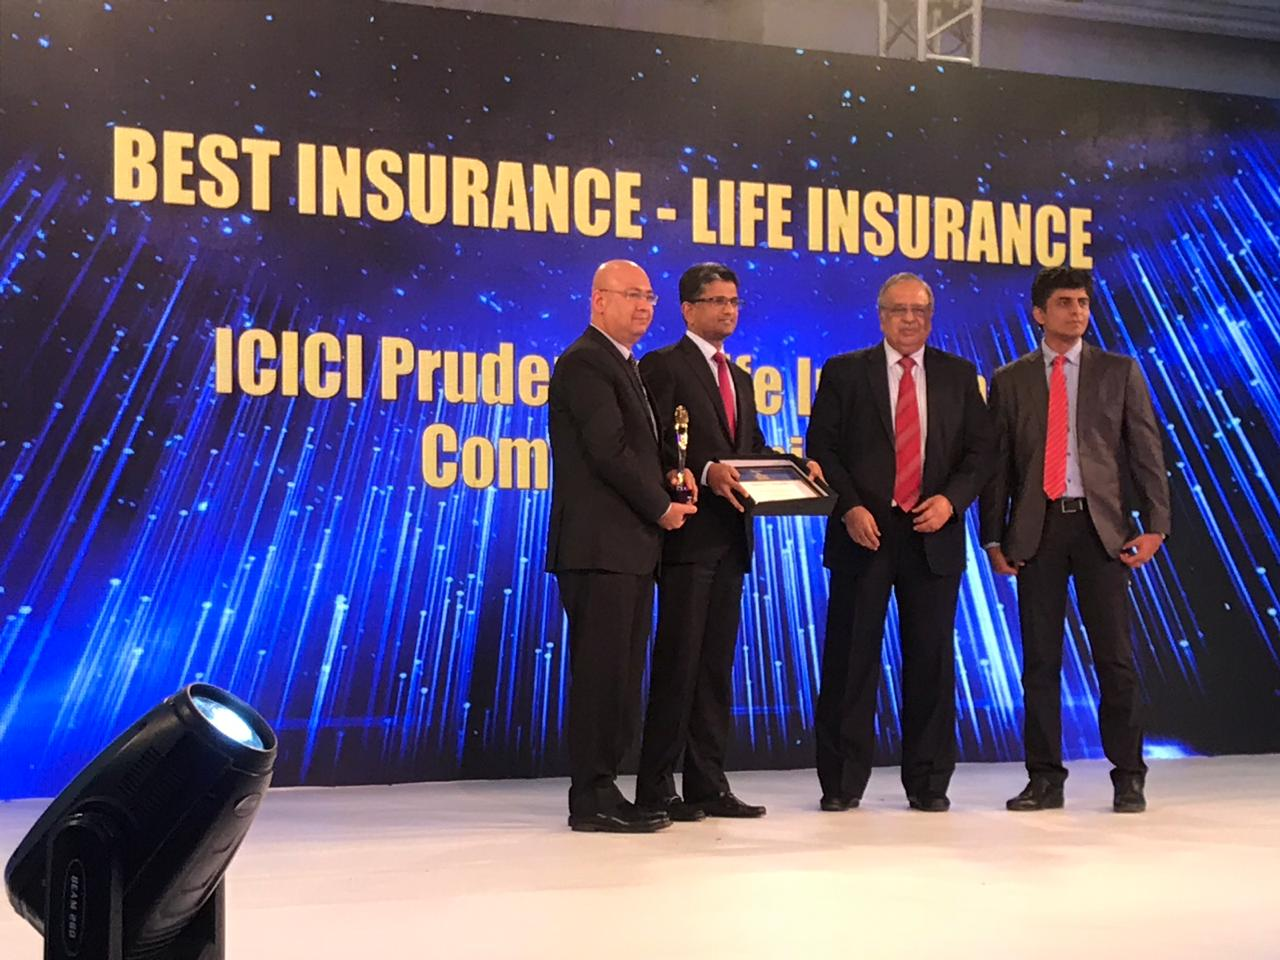 Best insurance - Life insurance: ICICI Prudential Life Insurance | ICICI Prudential Life, a joint venture between ICICI Bank and Prudential Corporation Holdings, began operations in 2001. The insurer has consistently been among the top three private life insurers since its inception. ICICI PruLife was the first insurer to be listed on Indian stock exchanges. In FY18, the insurer collected first year premiums of Rs 9,118 crore. With a market share of 15.4 percent, it was the third-largest insurer in FY18 (by first year premium). (Image: Moneycontrol )